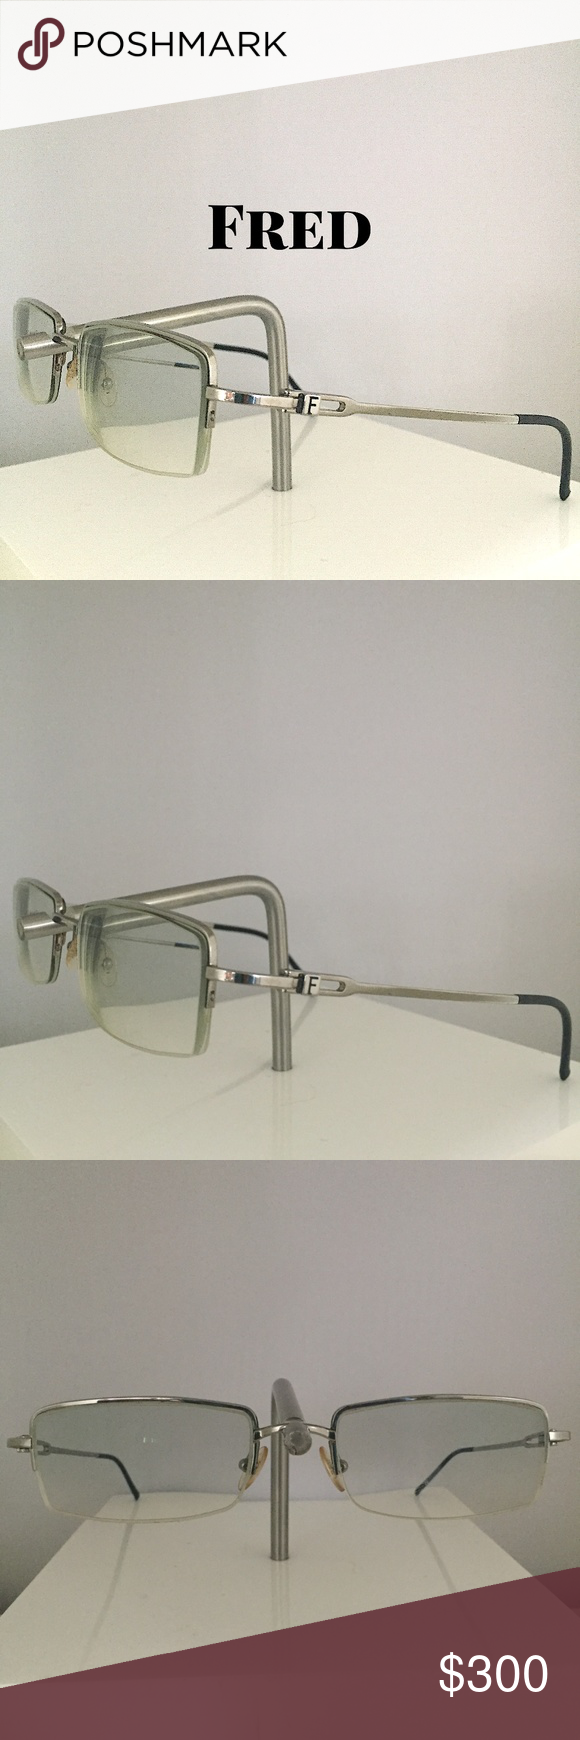 1f35dbca7ef0 FRED LUNETTES Eyeglasses FRED LUNETTES Eyeglasses! Stunning in both looks  and quality FRED eyewear.